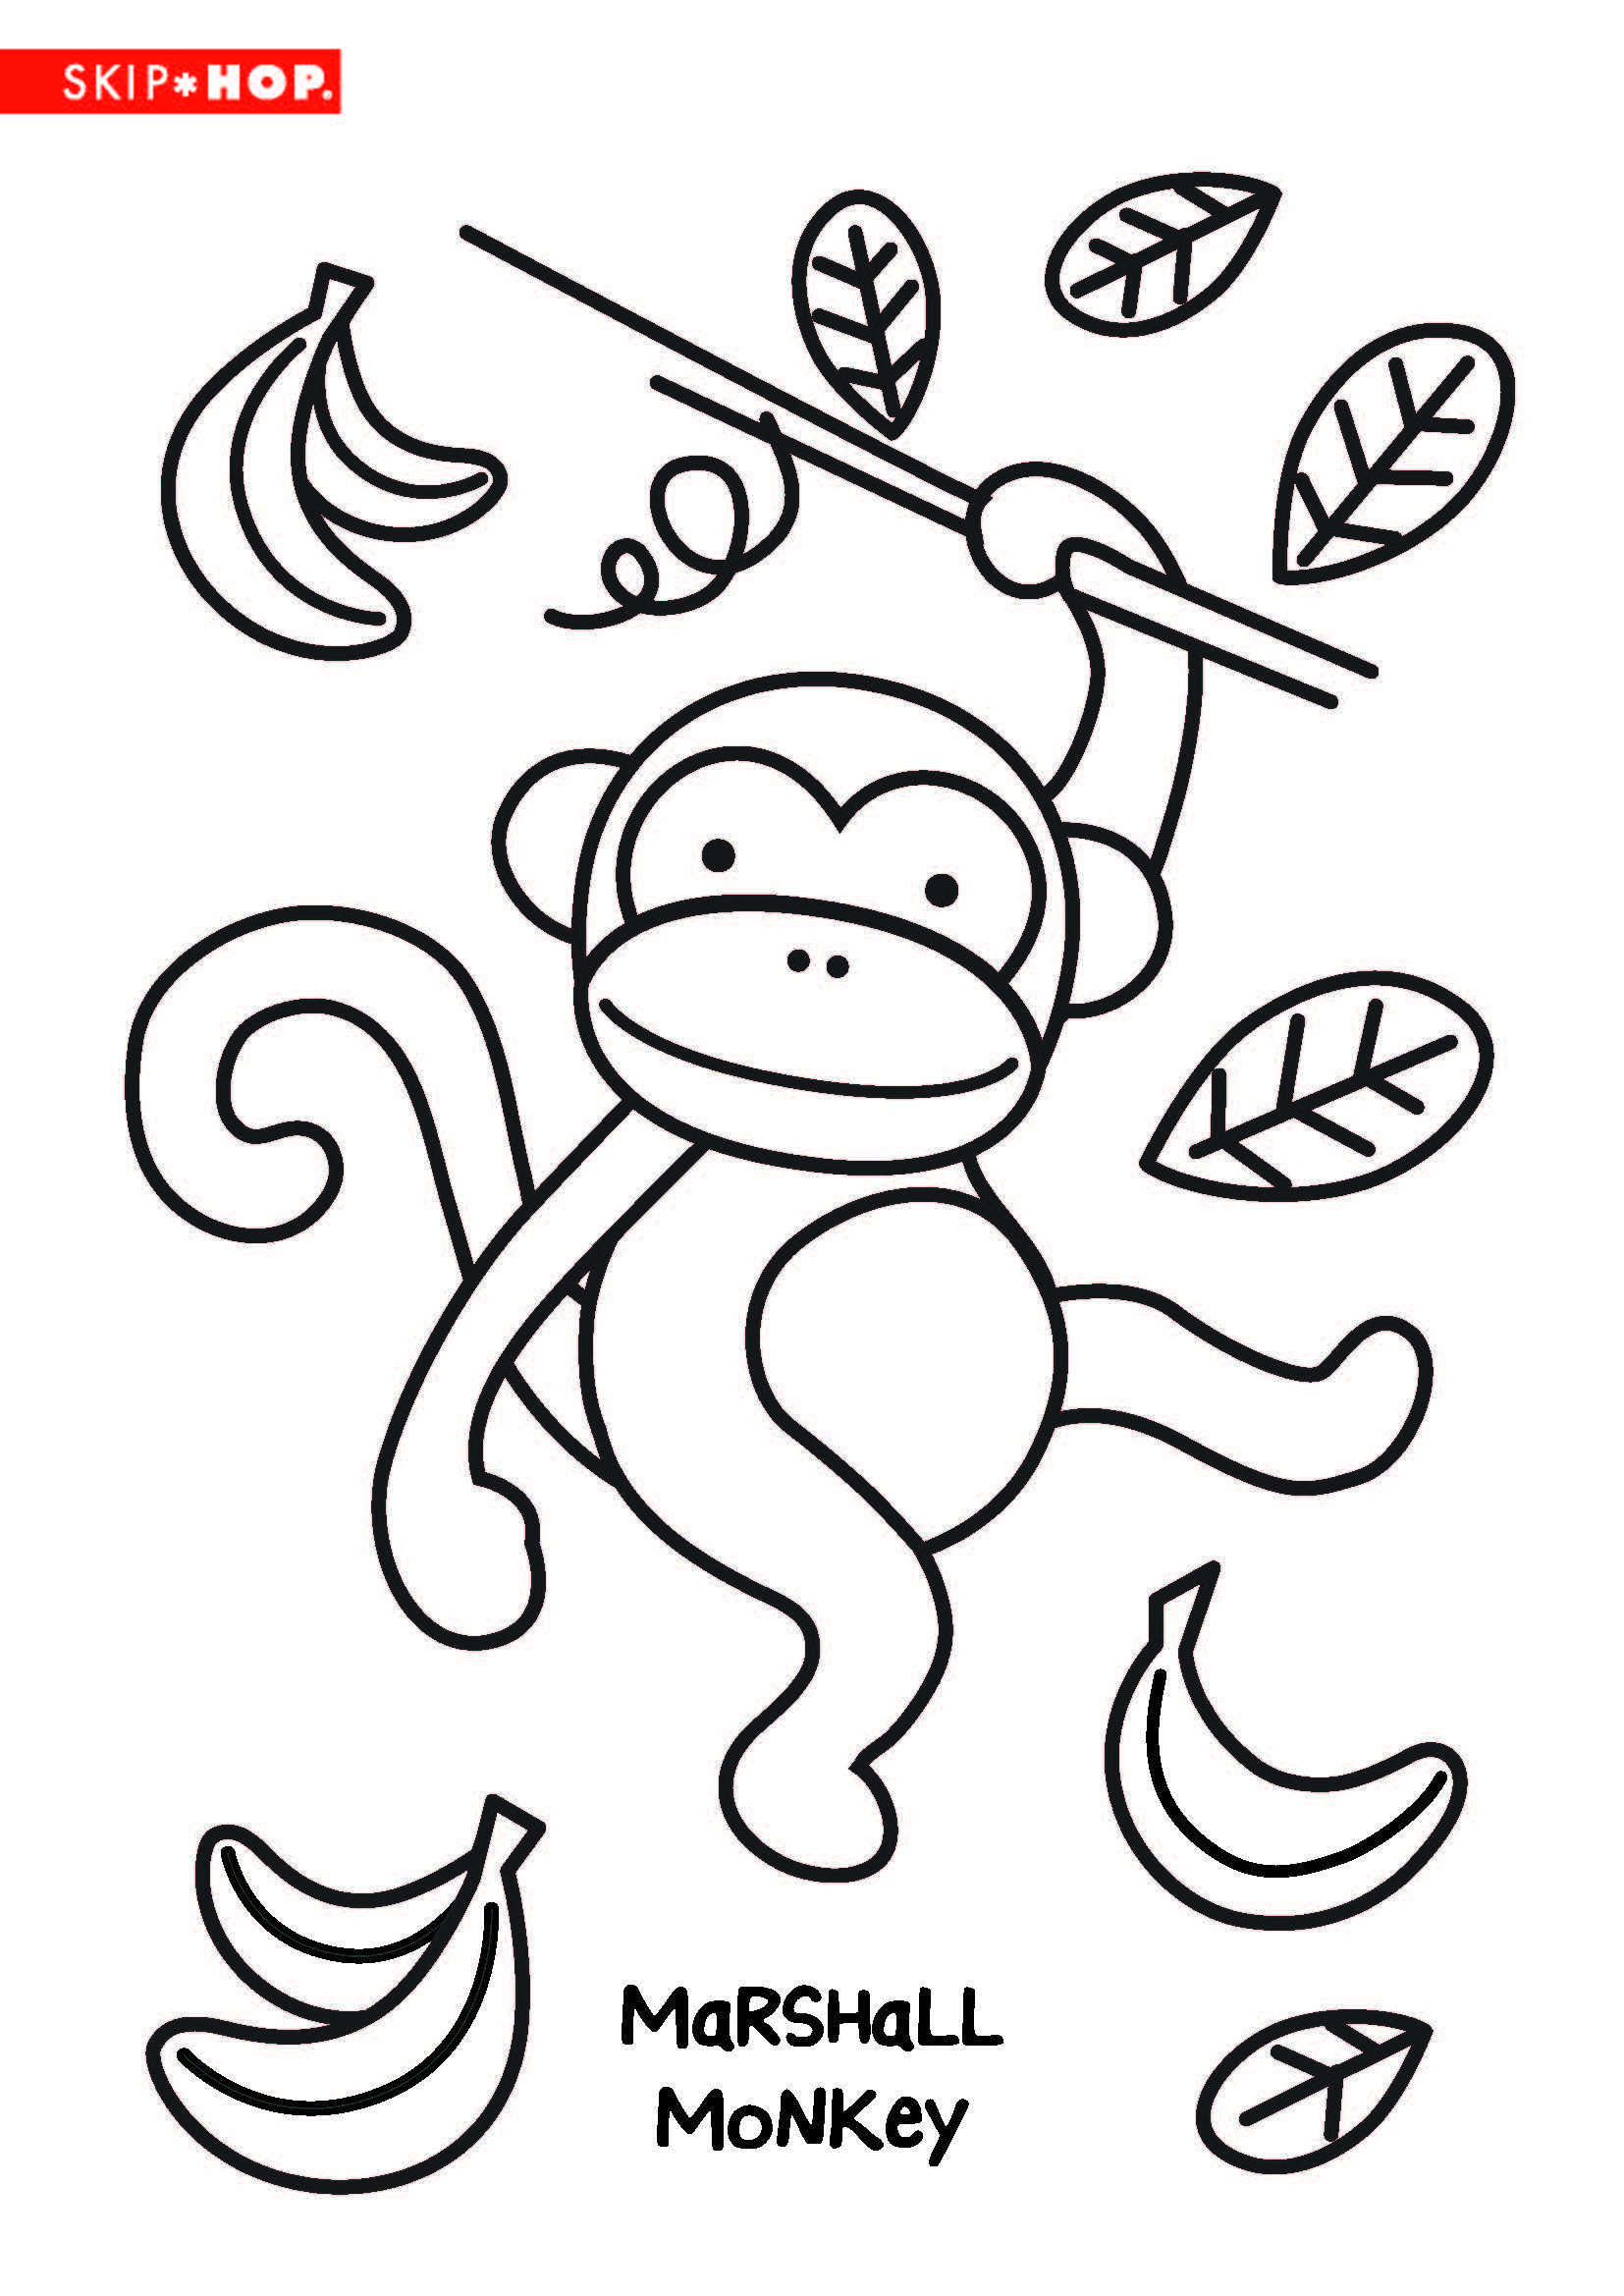 Marshall Monkey Coloring Sheet Kids Coloring Books Fun Crafts For Kids Kids Coloring Book